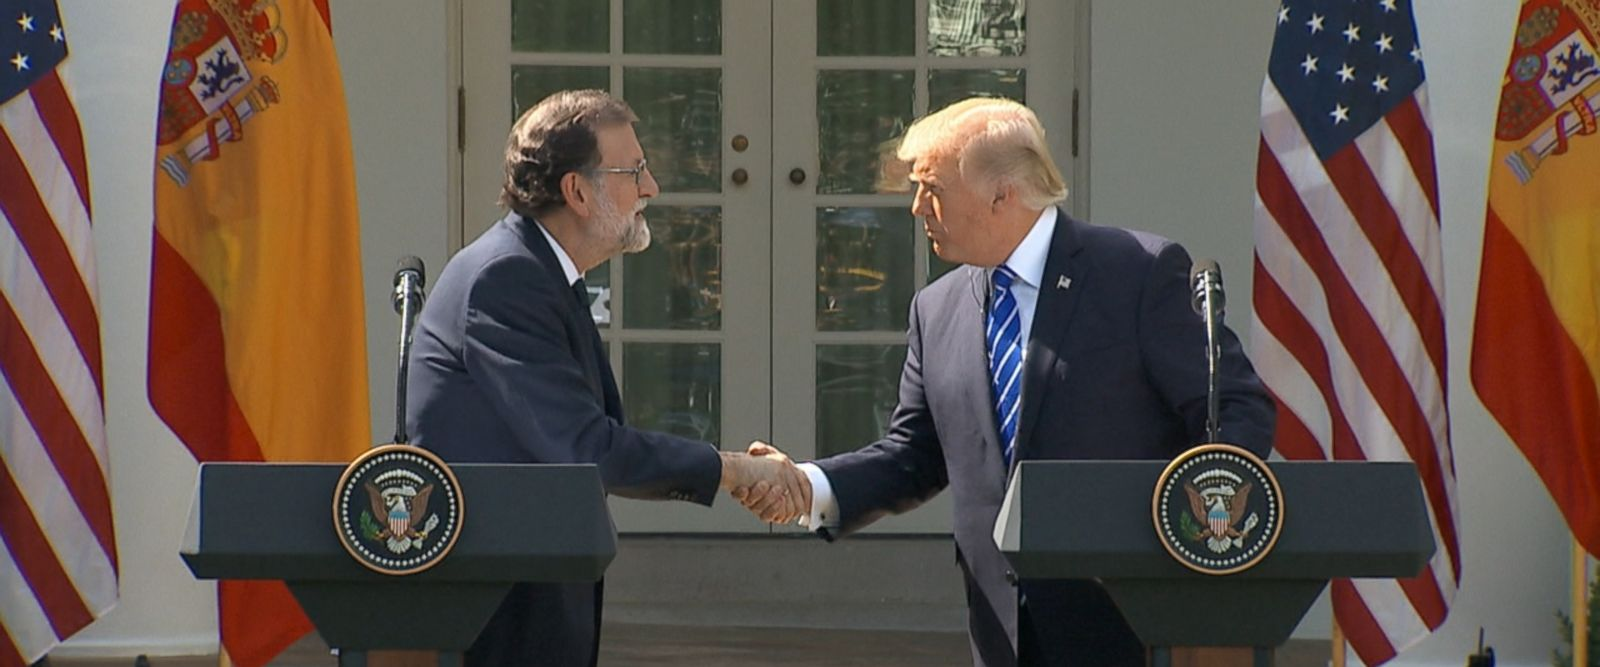 """Mariano Rajoy, the prime minister of Spain, joined President Donald Trump in the Rose Garden today to discuss """"a crucial range of economic and security issues."""""""